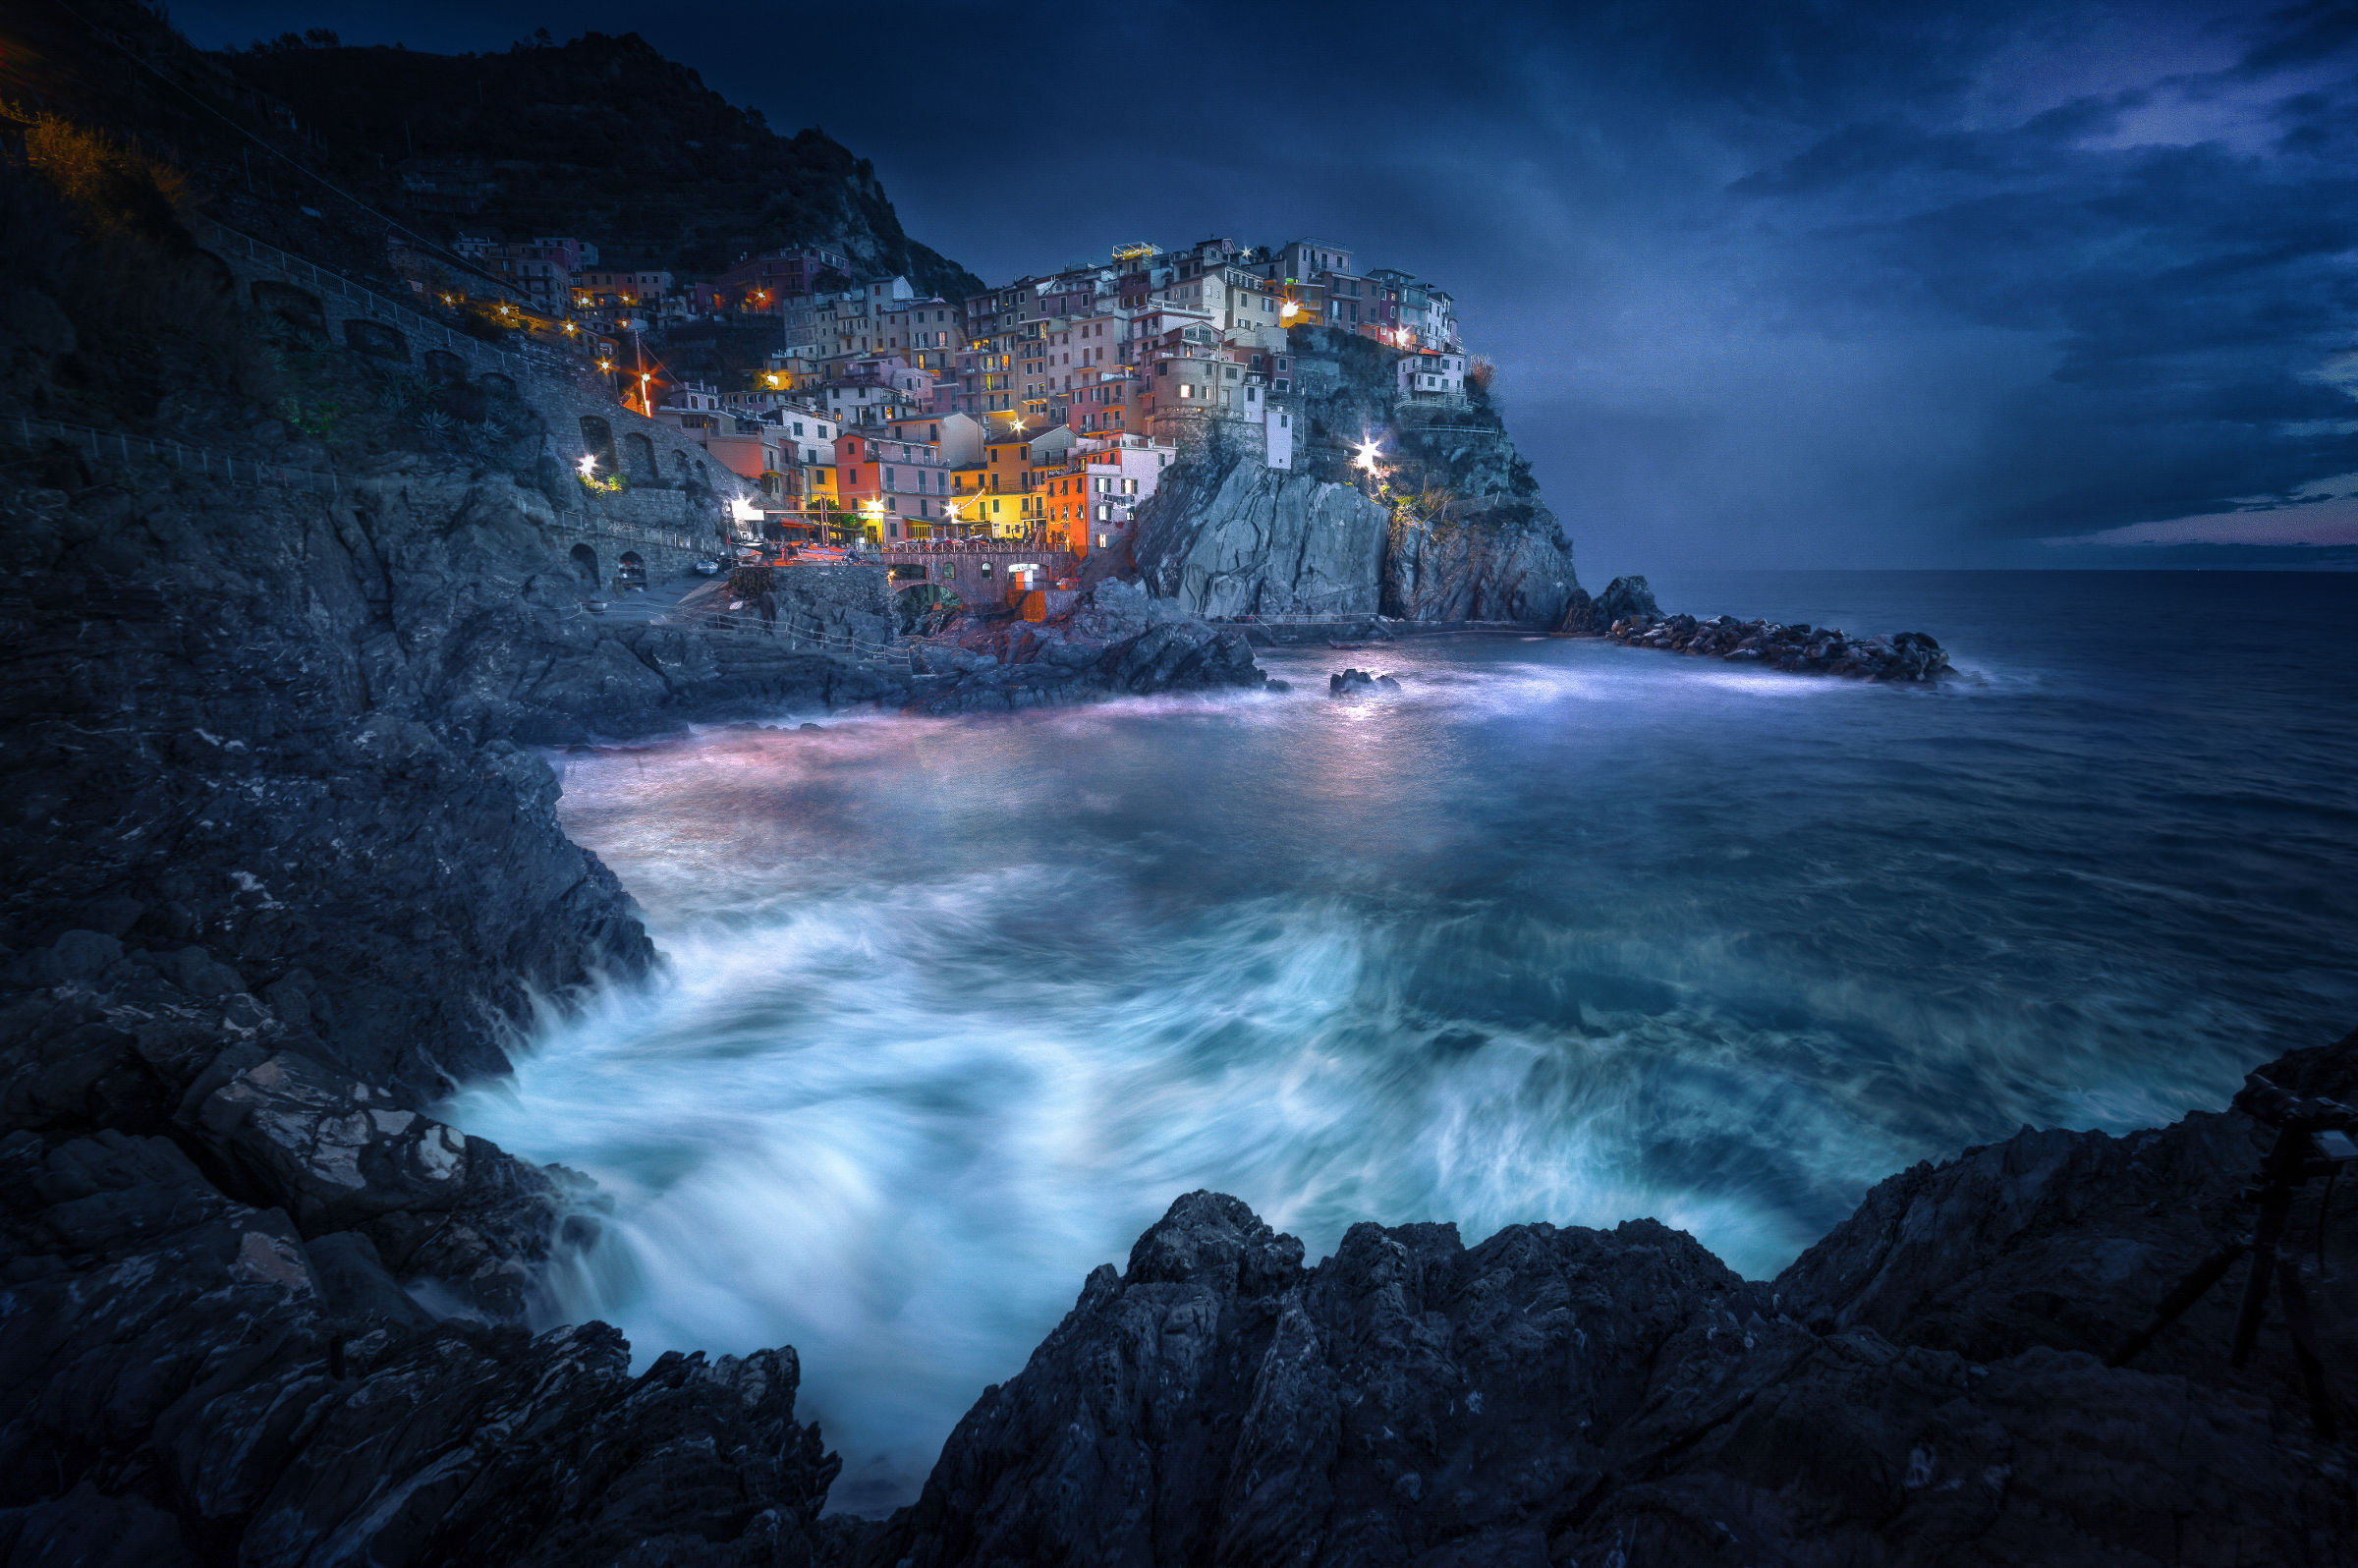 Manarola at Nightfall...